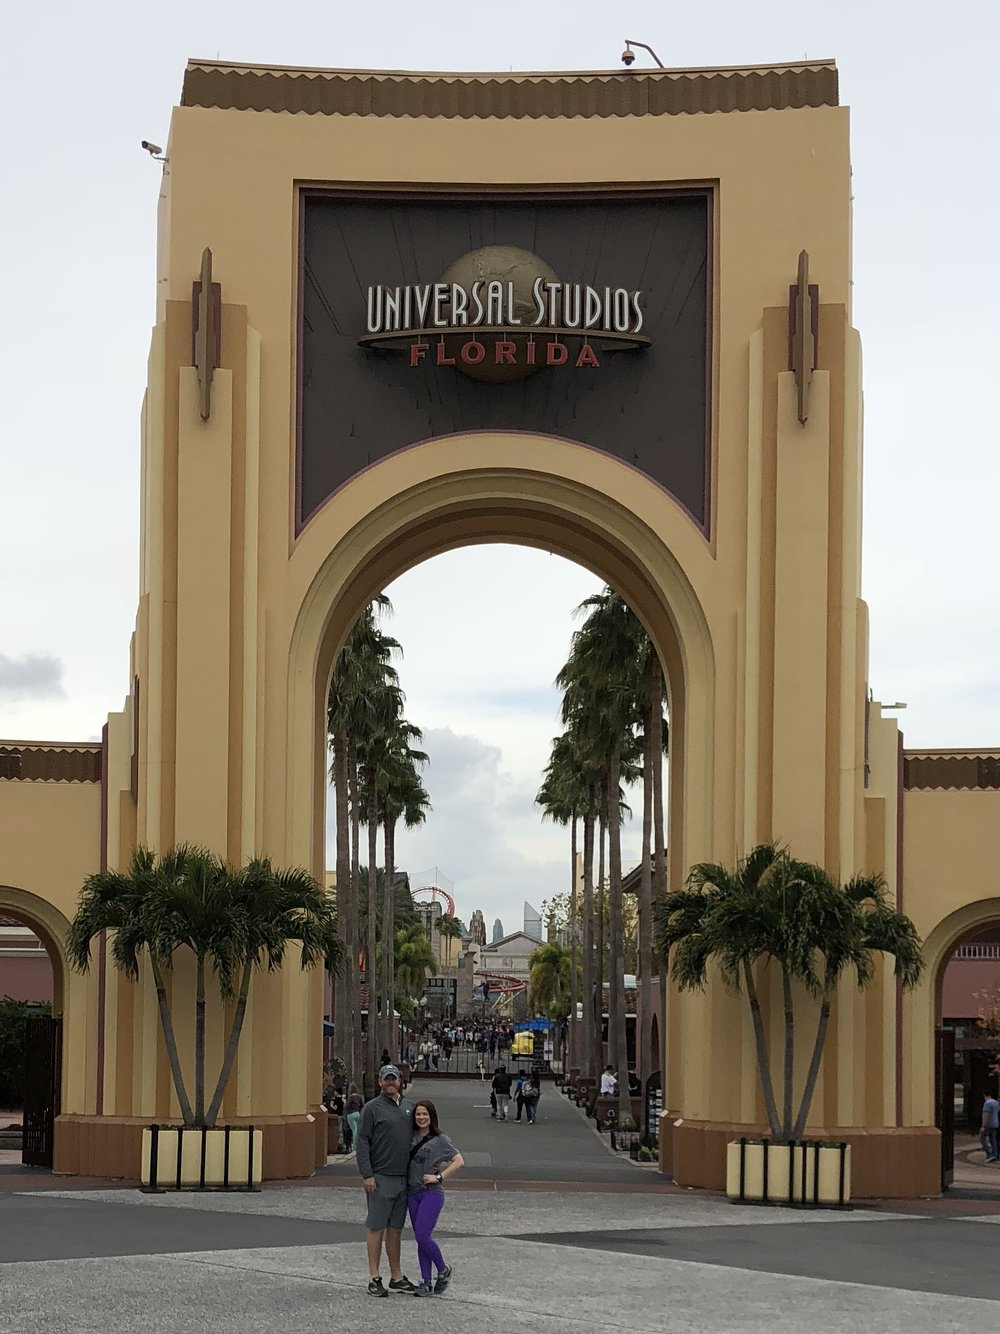 britt-development-group-universal-studios-orlando-florida-ibs.jpg